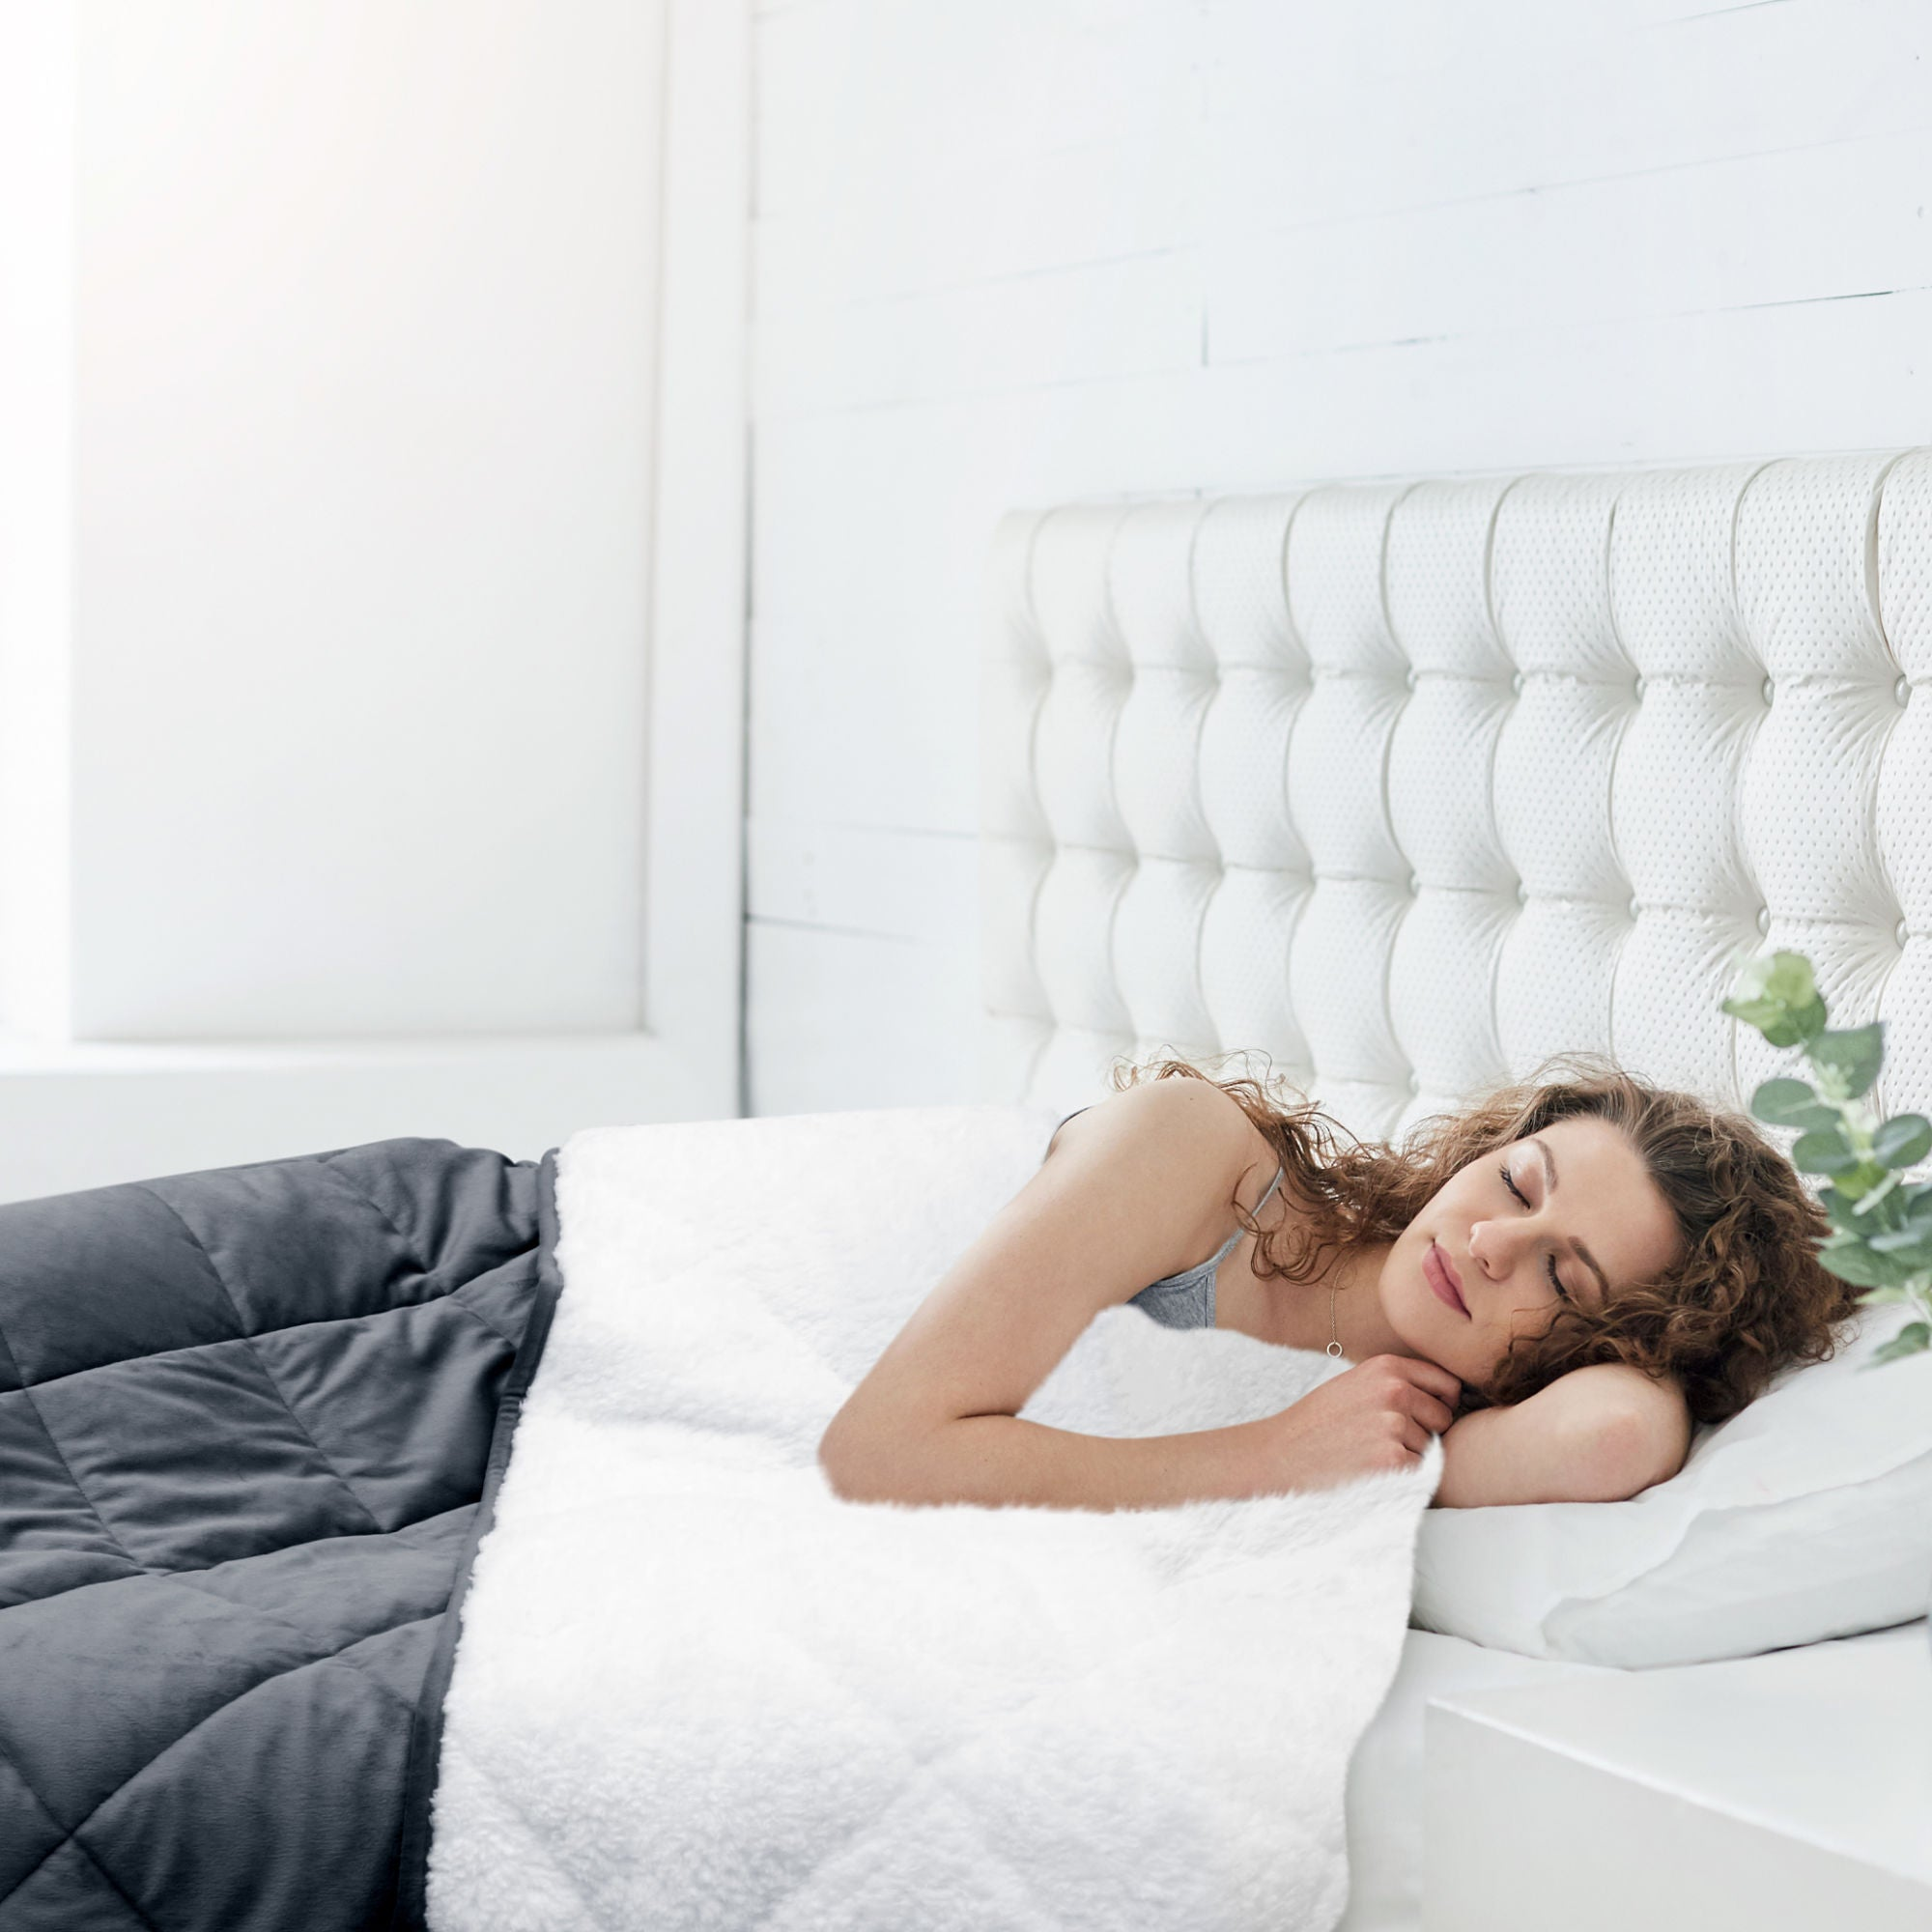 Photograph of a young woman laying in bed in deep sleep using a sherpa and fleece weighted blanket from Restasy